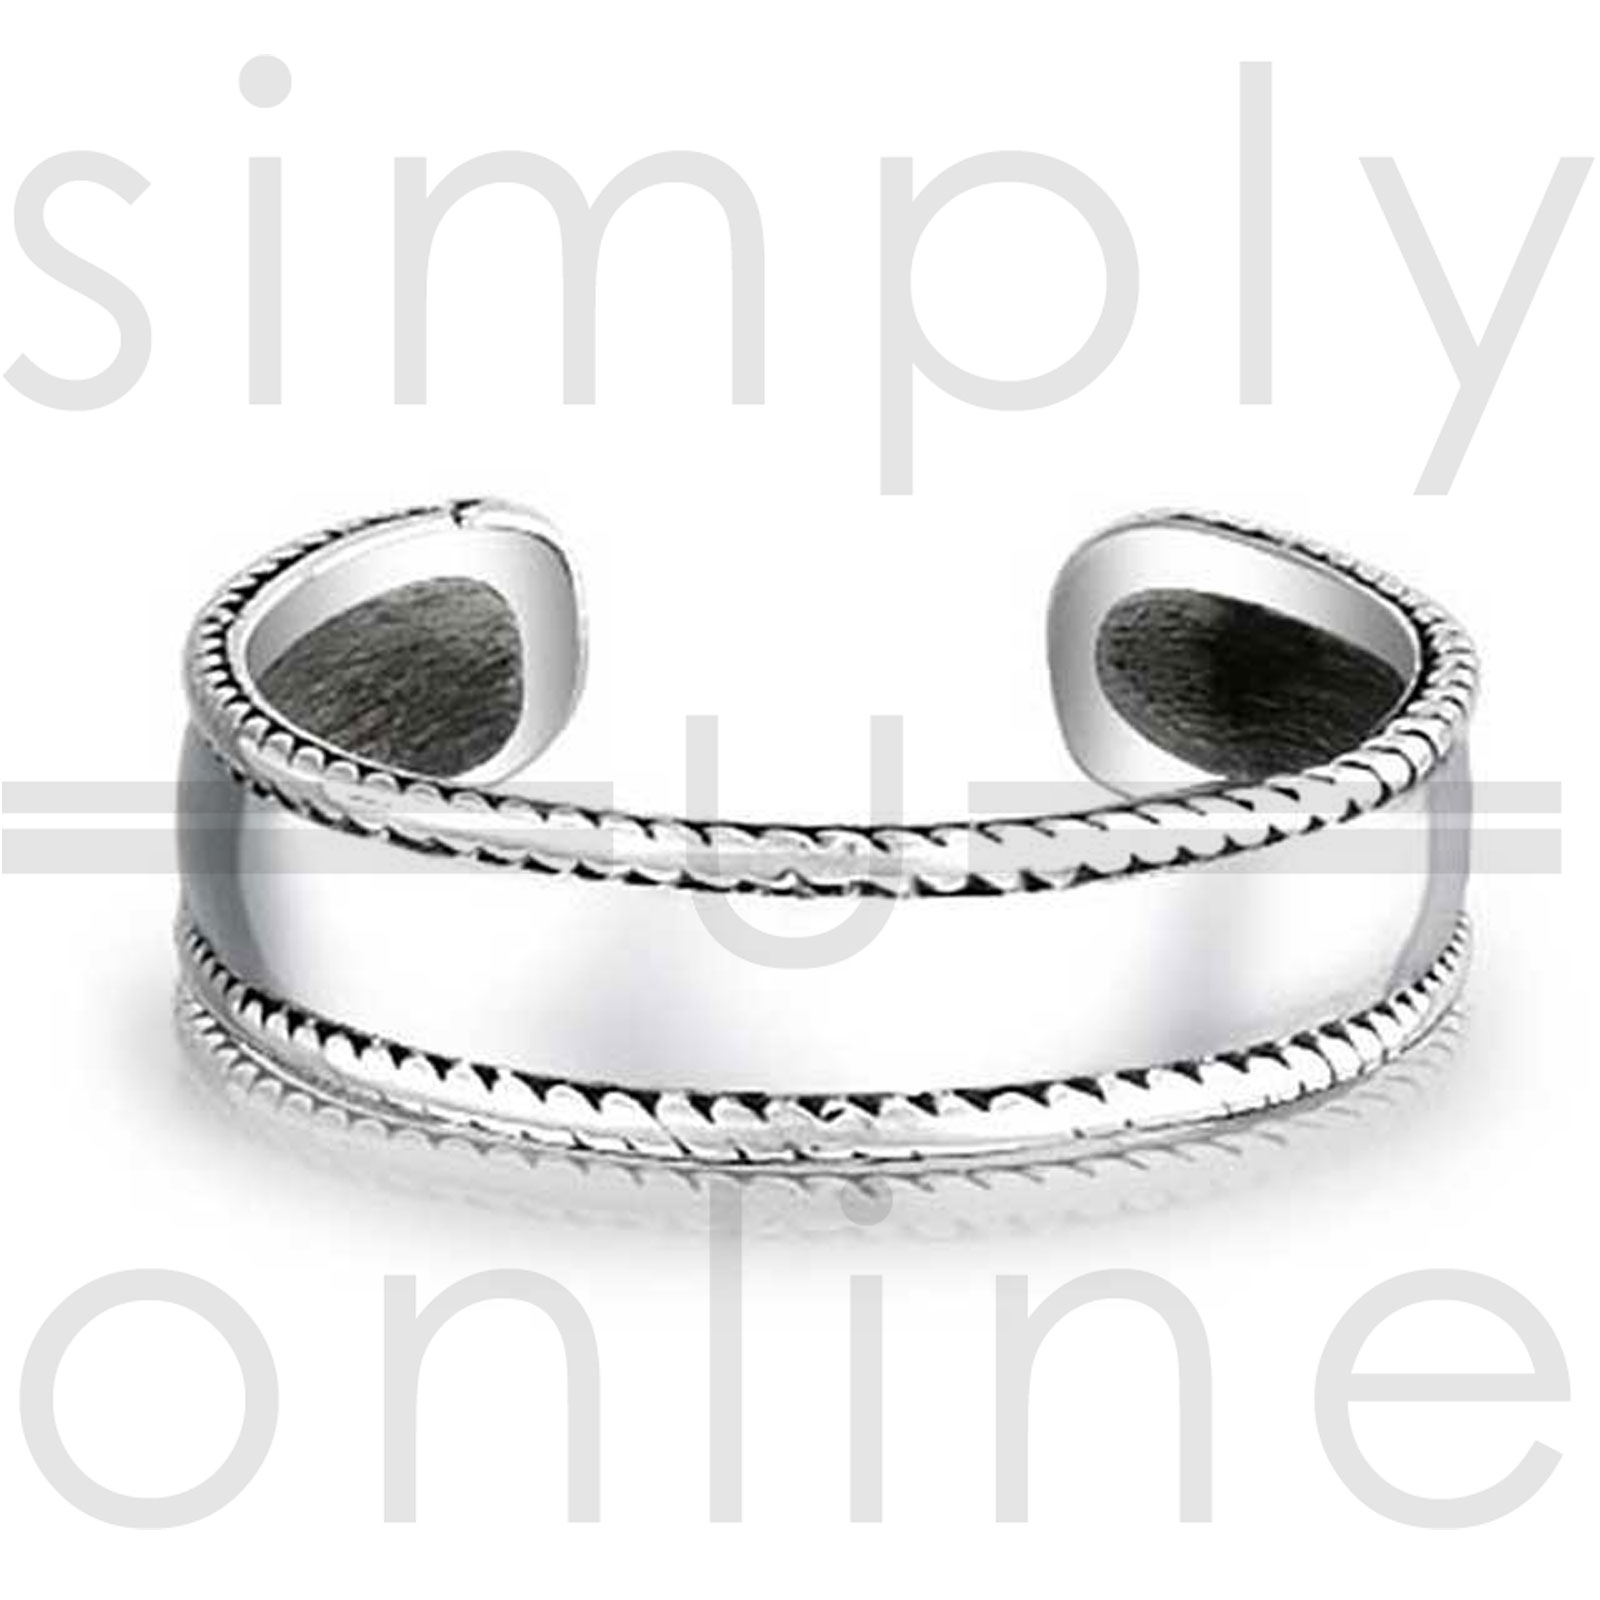 Bali Style Adjustable Toe Ring Sterling Silver Toe Ring